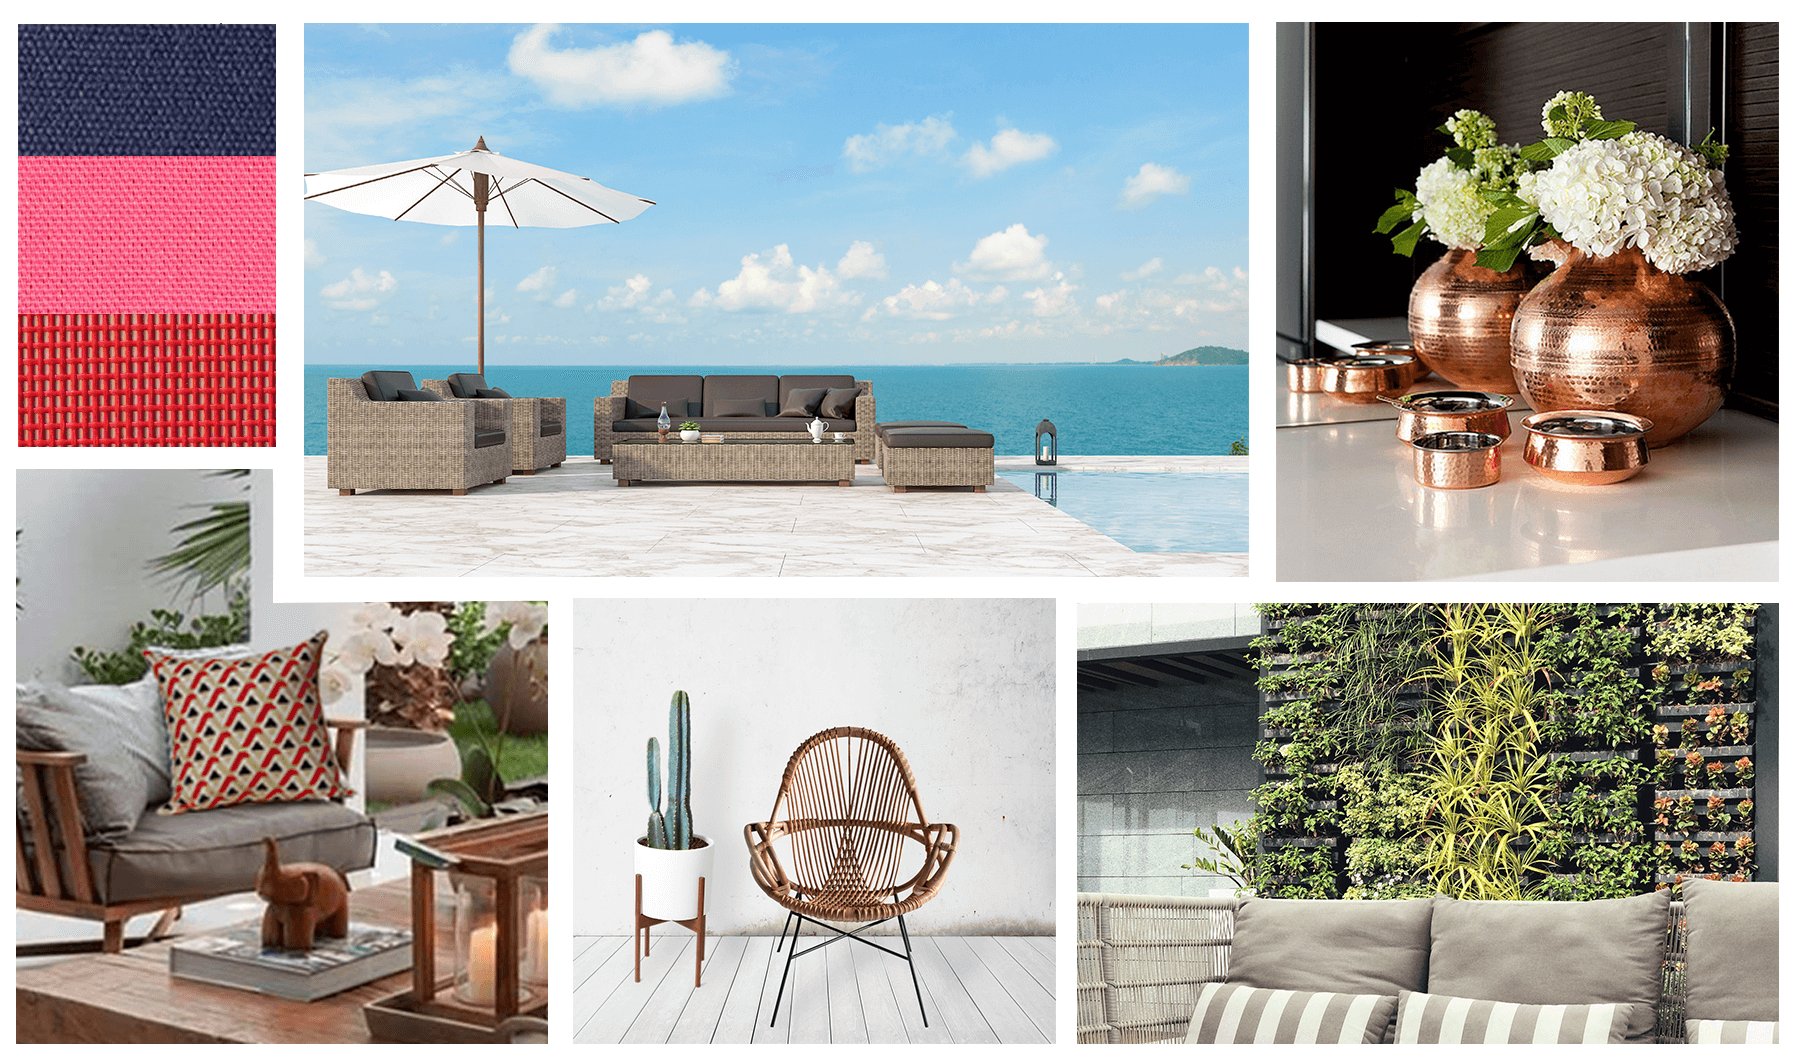 Spice Up Your Outdoors with 2019's 11 New Design and Decor Trends